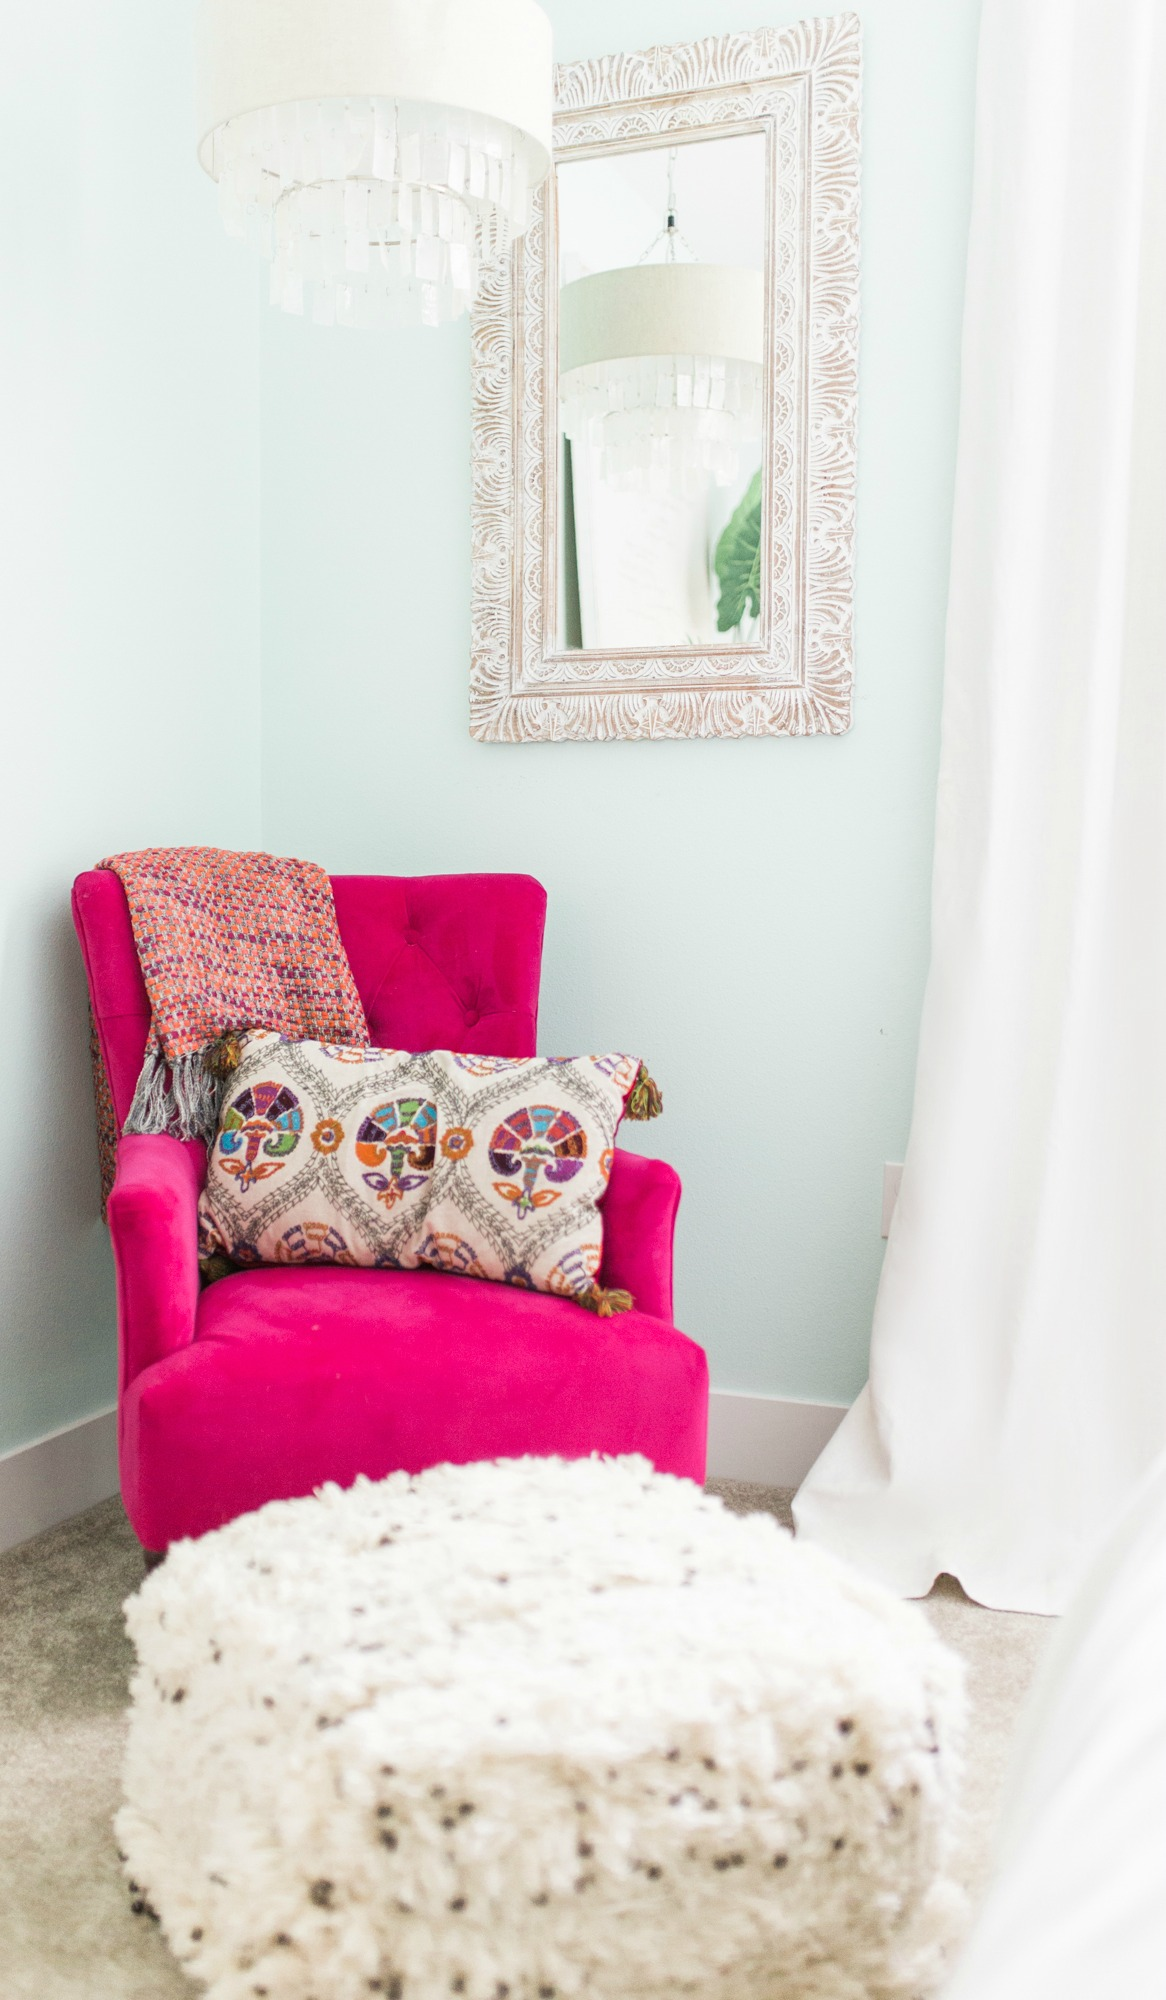 bedroom refresh with world market mckenna bleu